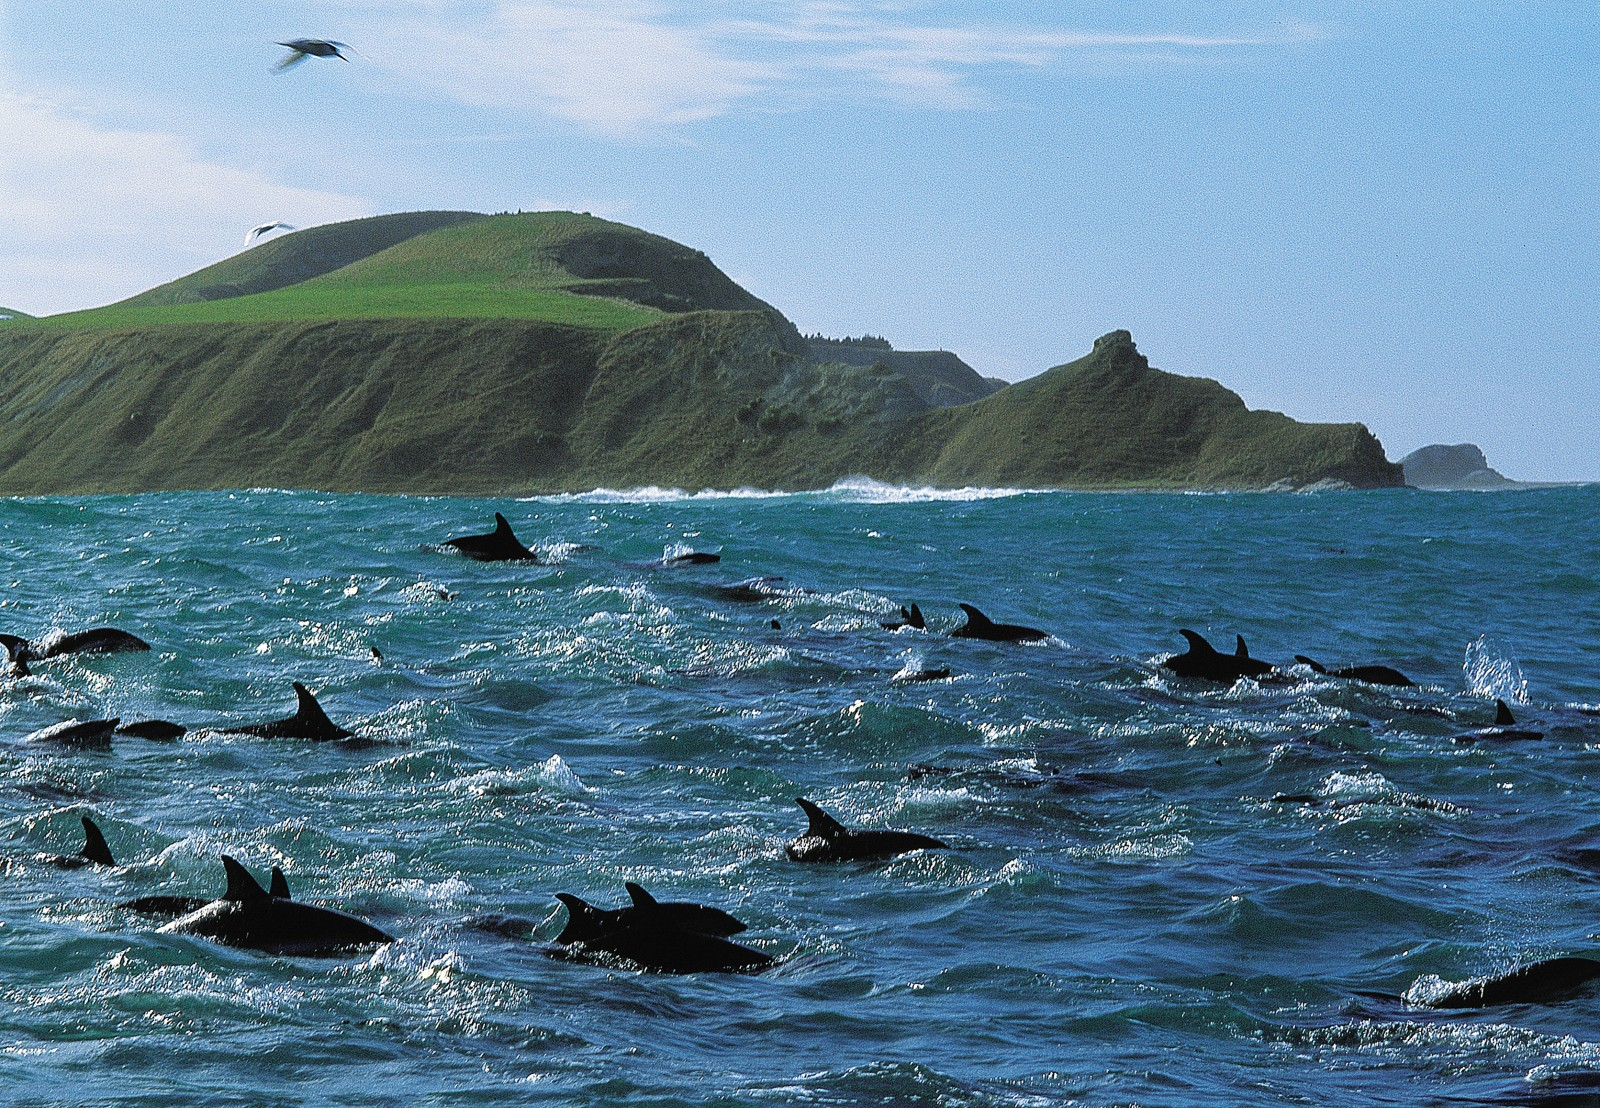 Both dusky and Hector's dolphins, along with sharks, seals, seabirds and whales, are reviving the fortunes of Kaikoura as visitors delight in the opportunities the area offers for marine encounters.